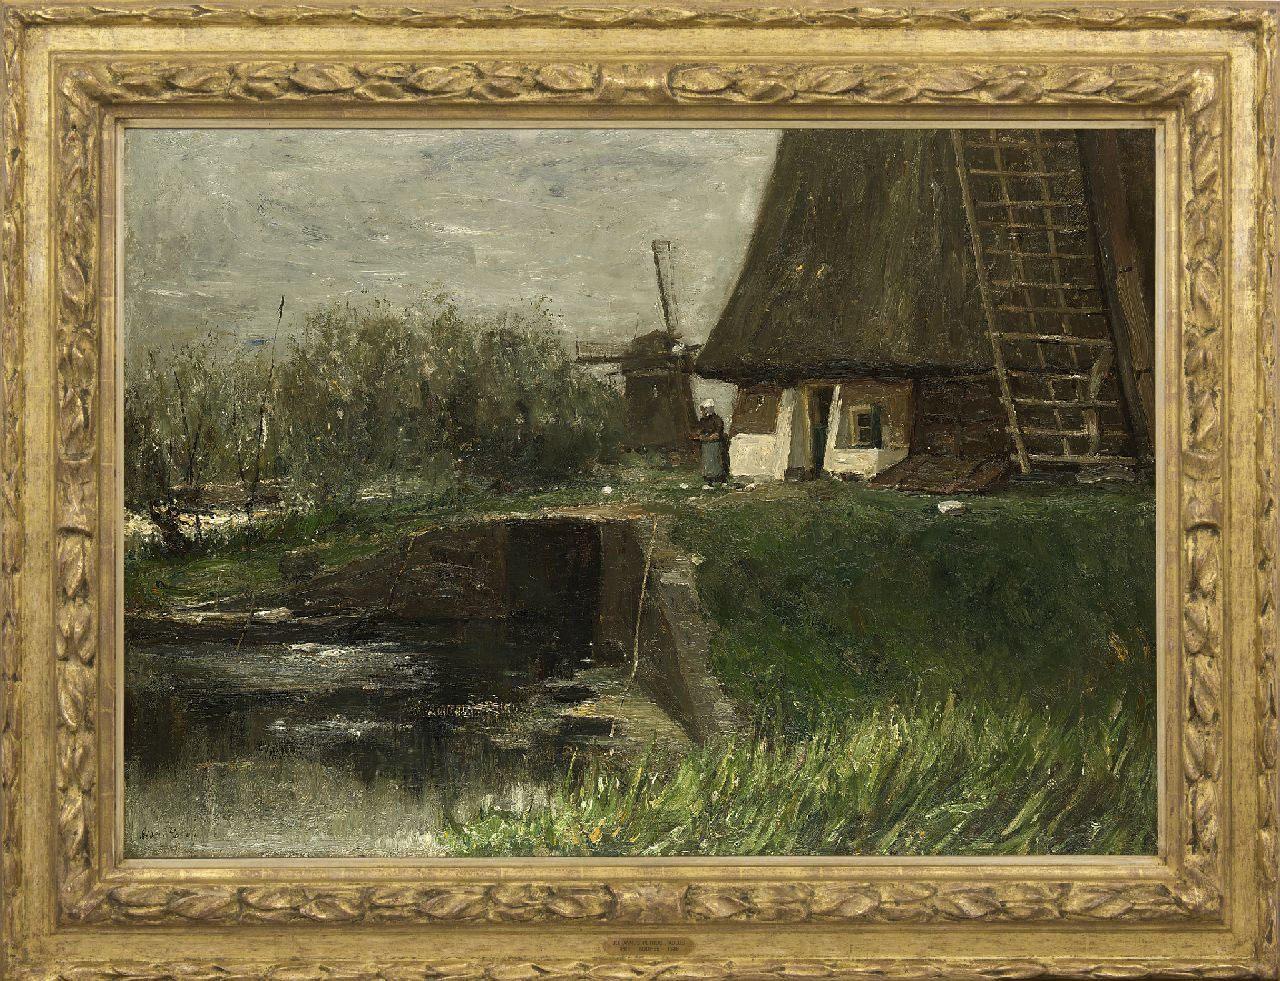 Roelofs O.W.A.  | Otto Willem Albertus 'Albert' Roelofs | Paintings offered for sale | Windmills, oil on canvas 70.8 x 100.5 cm, signed l.l. and painted ca. 1899